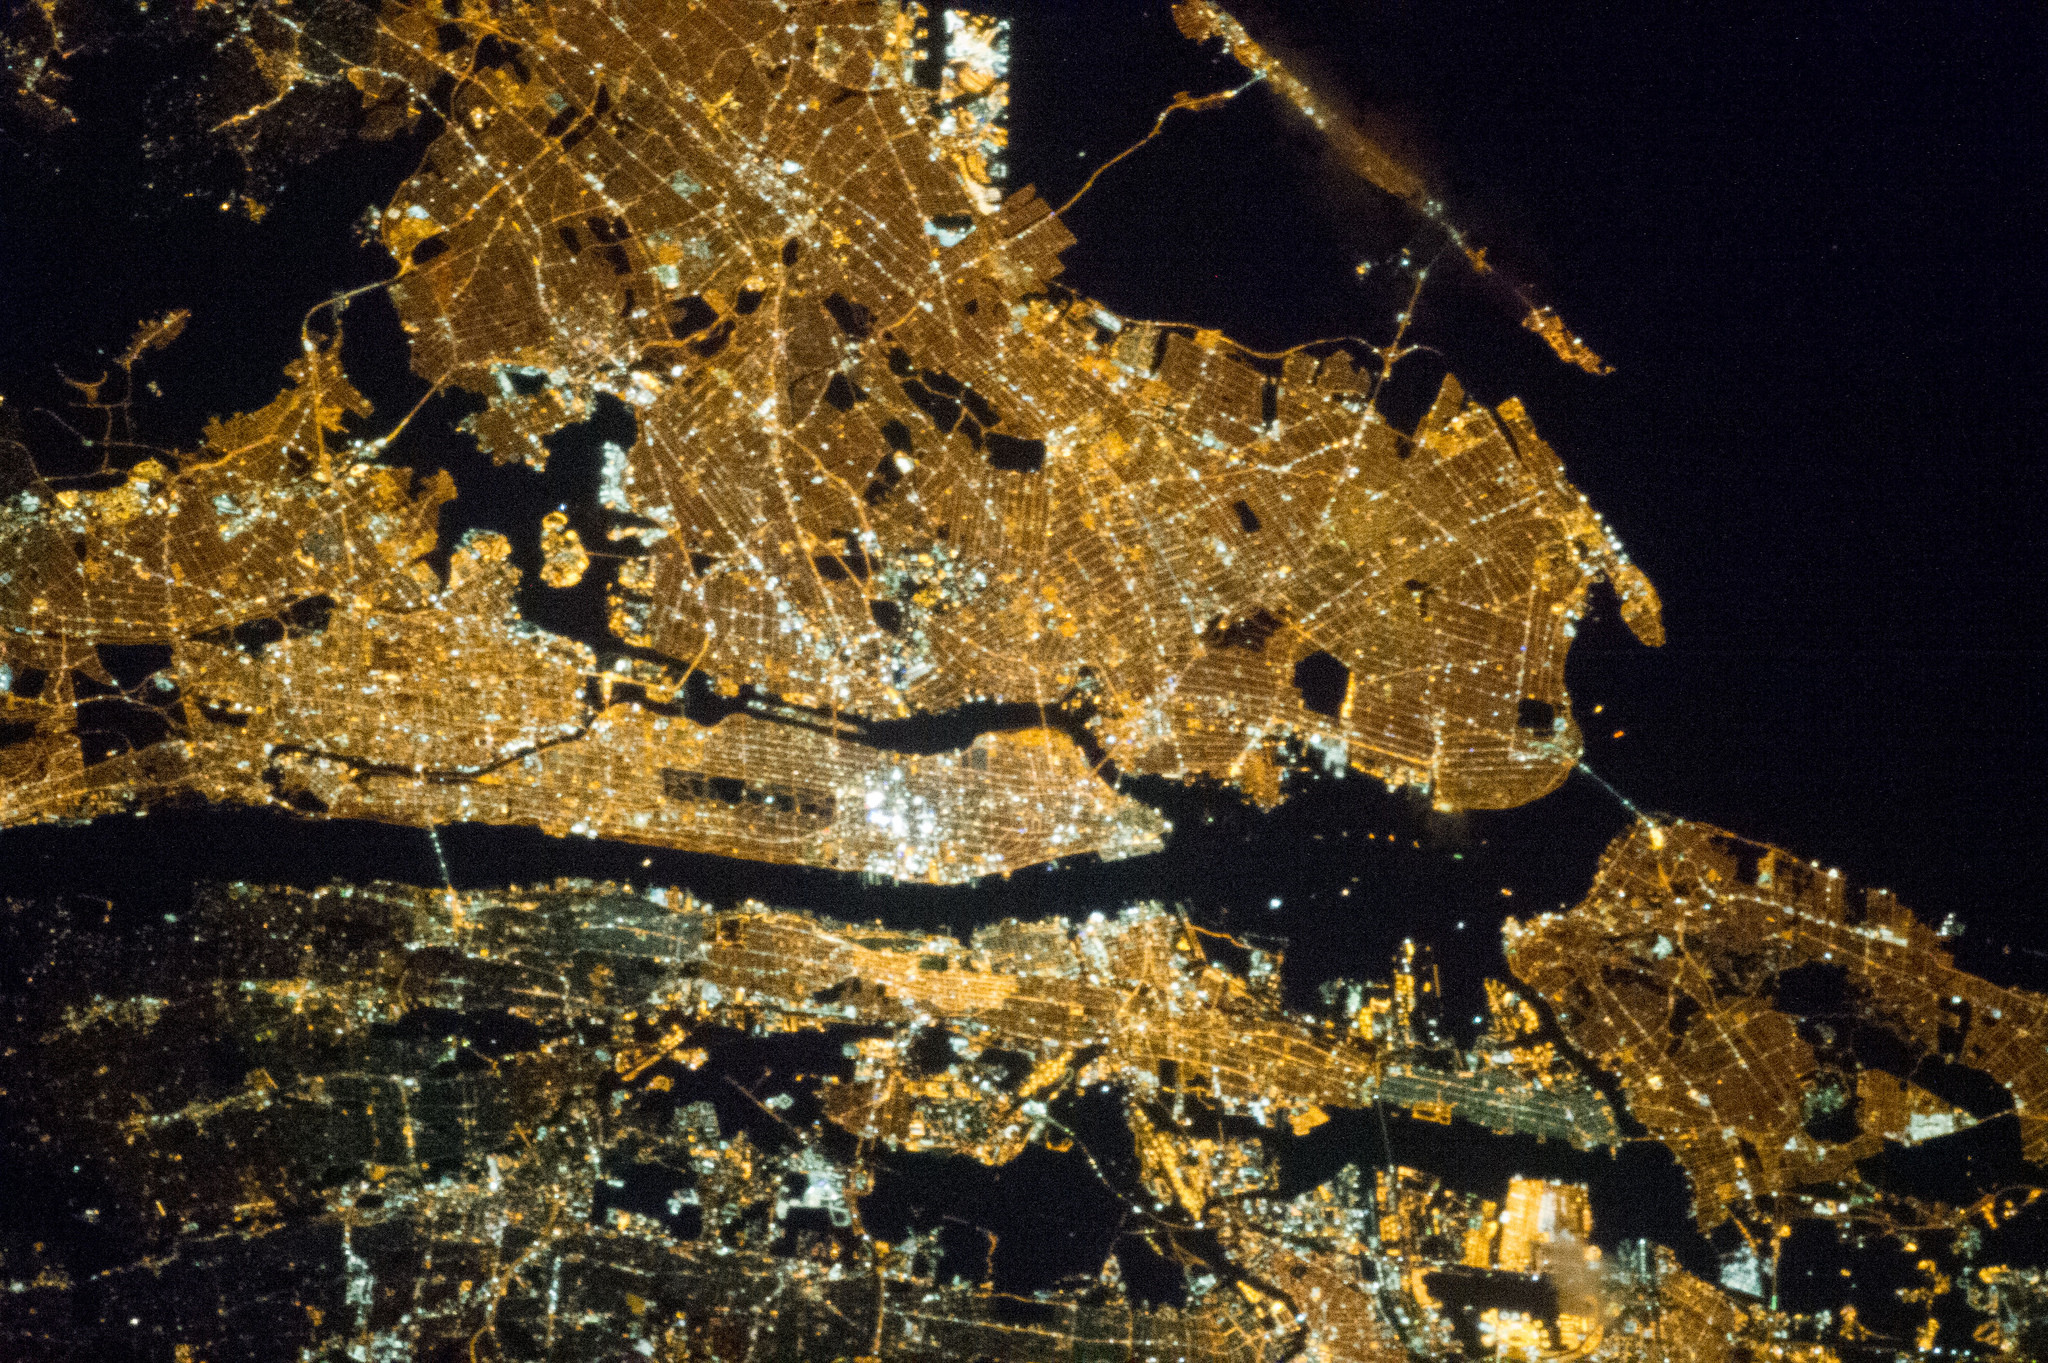 New_York_City_at_Night.jpg